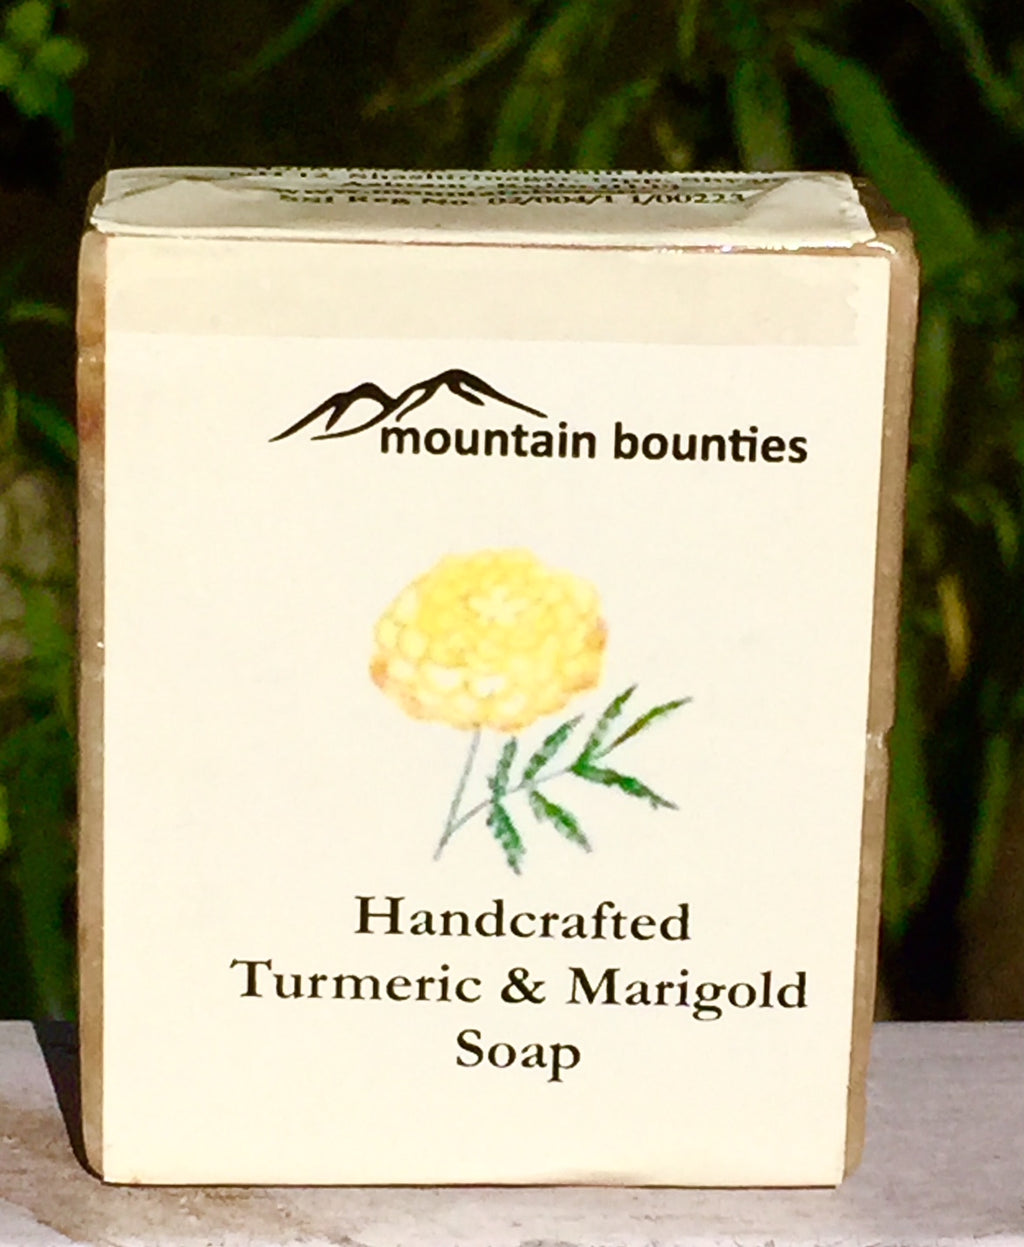 Handcrafted Turmeric & Marigold Soap